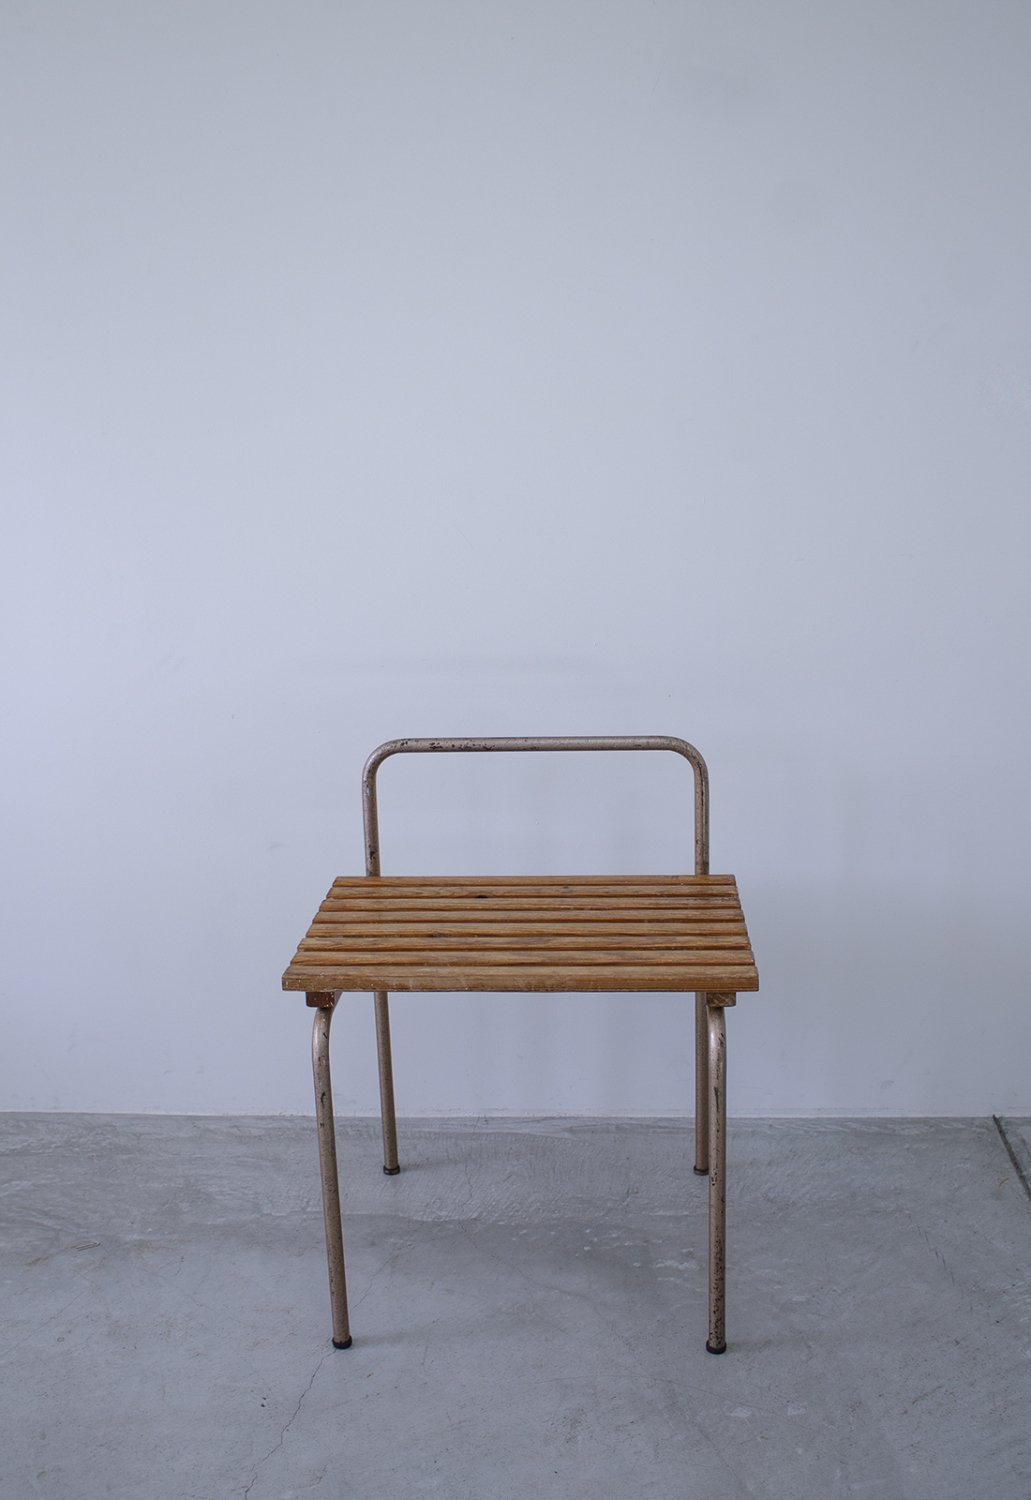 Charlotte Perriand -Luggage stool